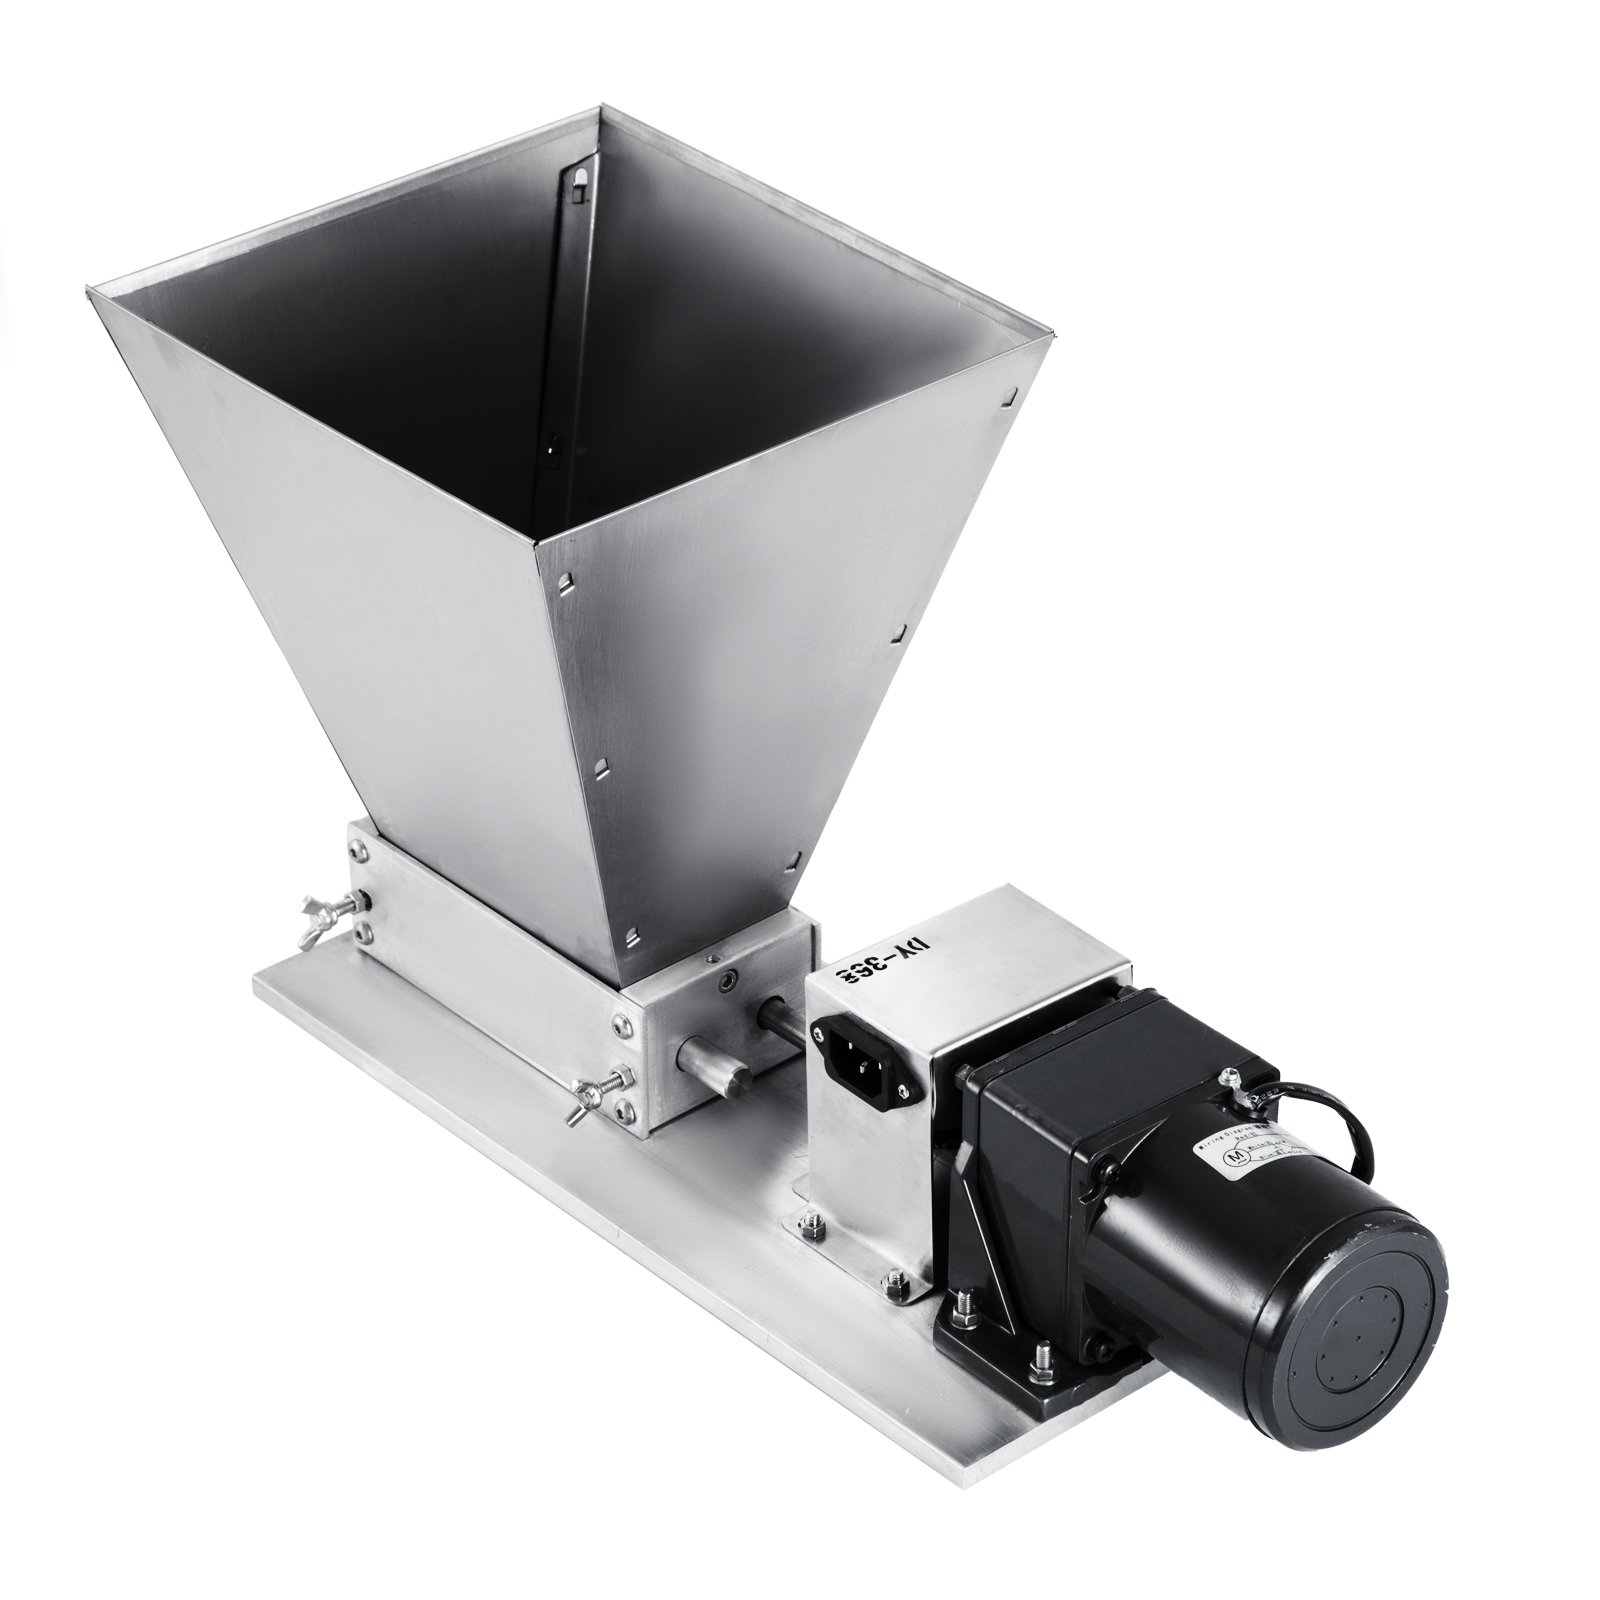 Happybuy Grain Mill Homebrew 2 Roller Barley Grinder 13-22lbs/h Grain Mill Electric 40PRM Malt Grain Mill for Grinding Various Grains Spice (Electric)